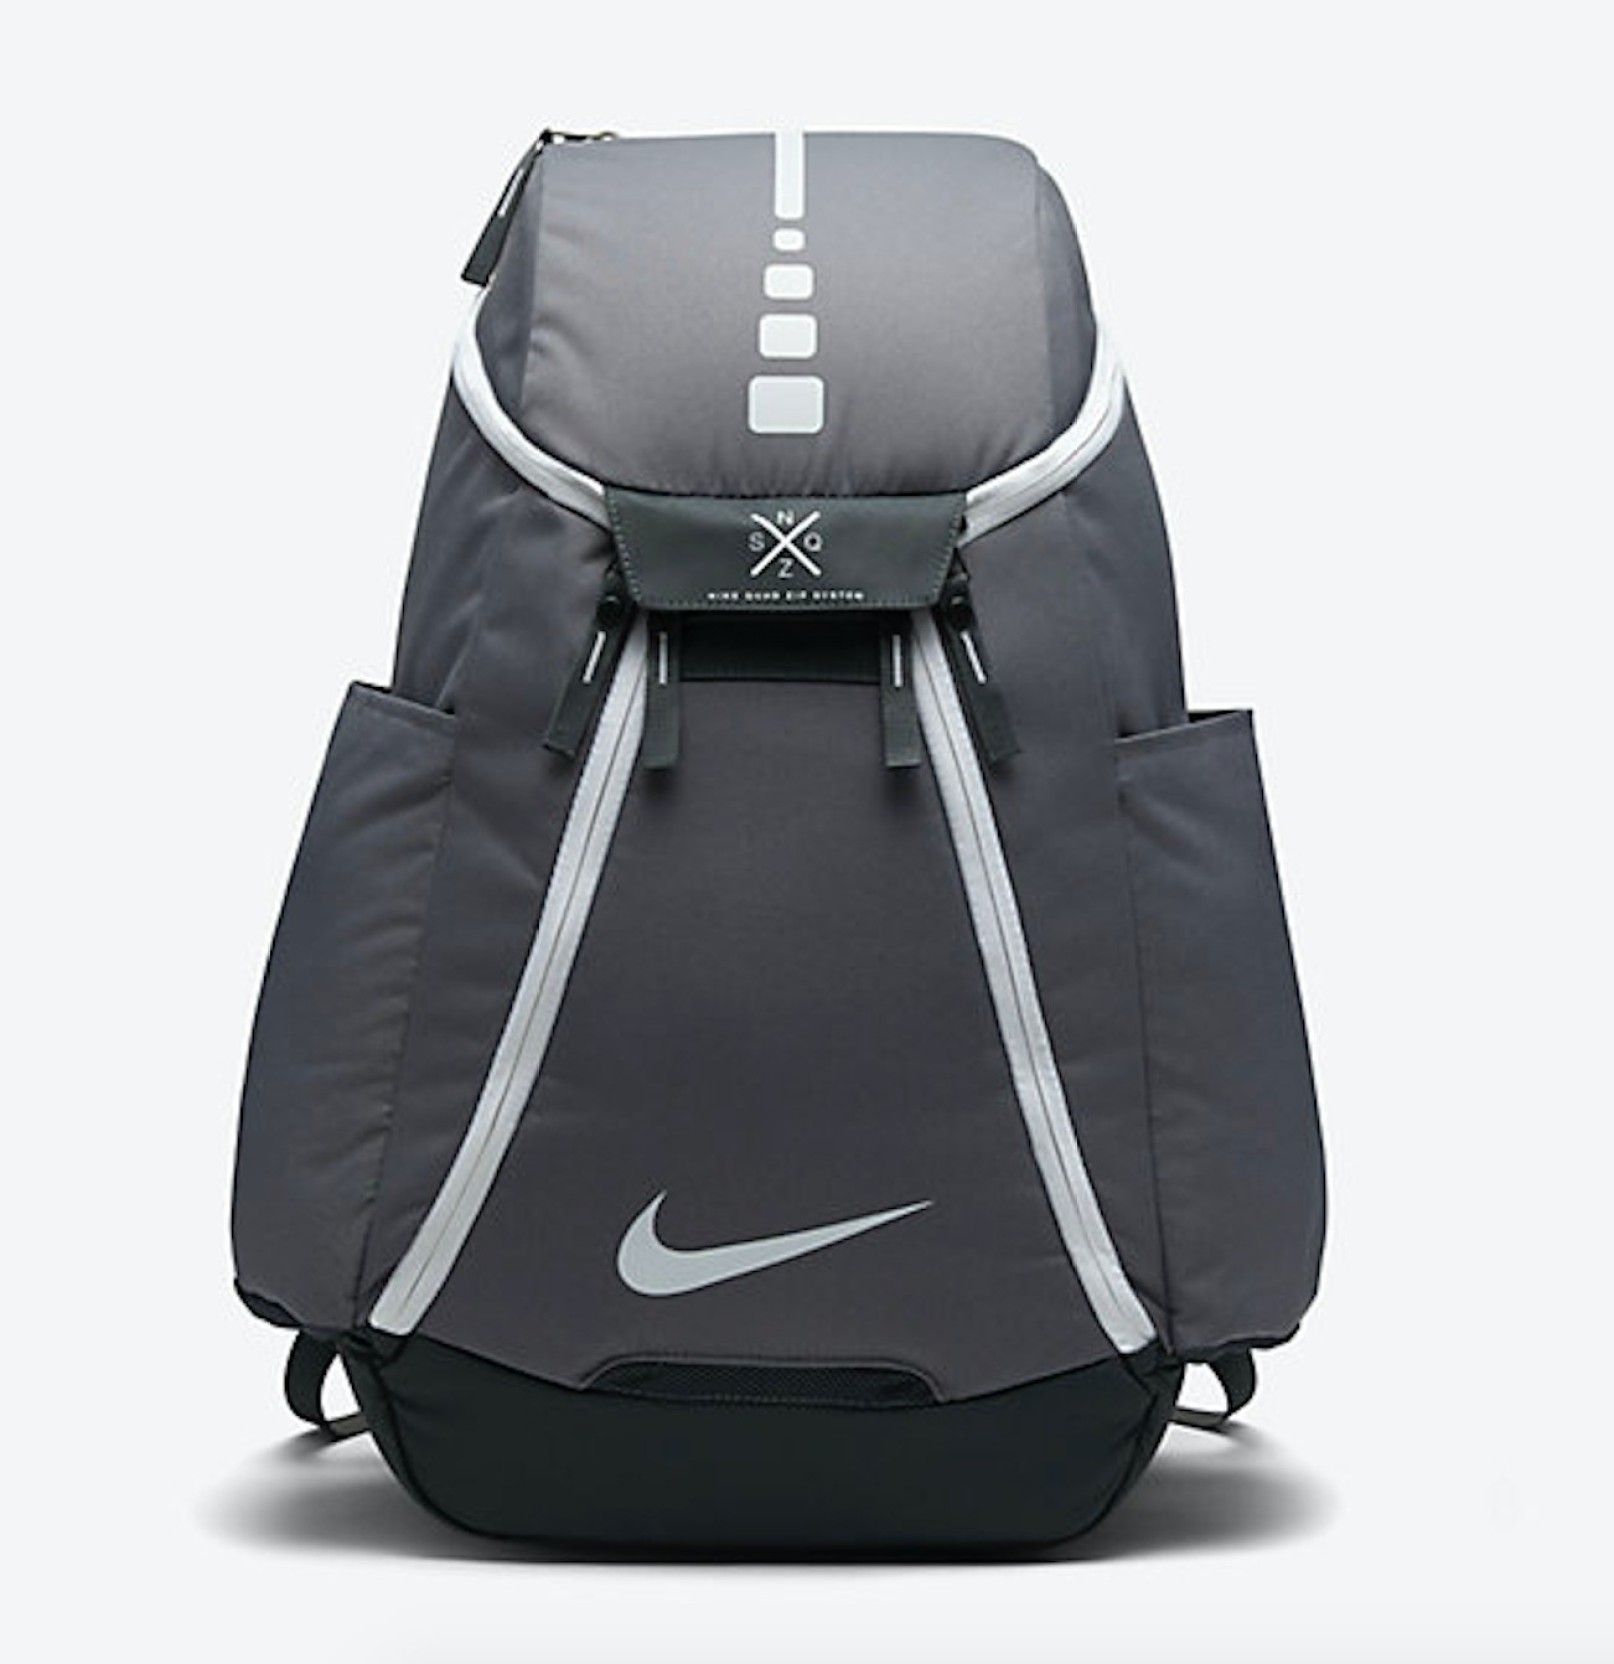 2be42891f74e Nike Hoops Elite Max Air 2.0 37 L Backpack Grey - Price in India ...